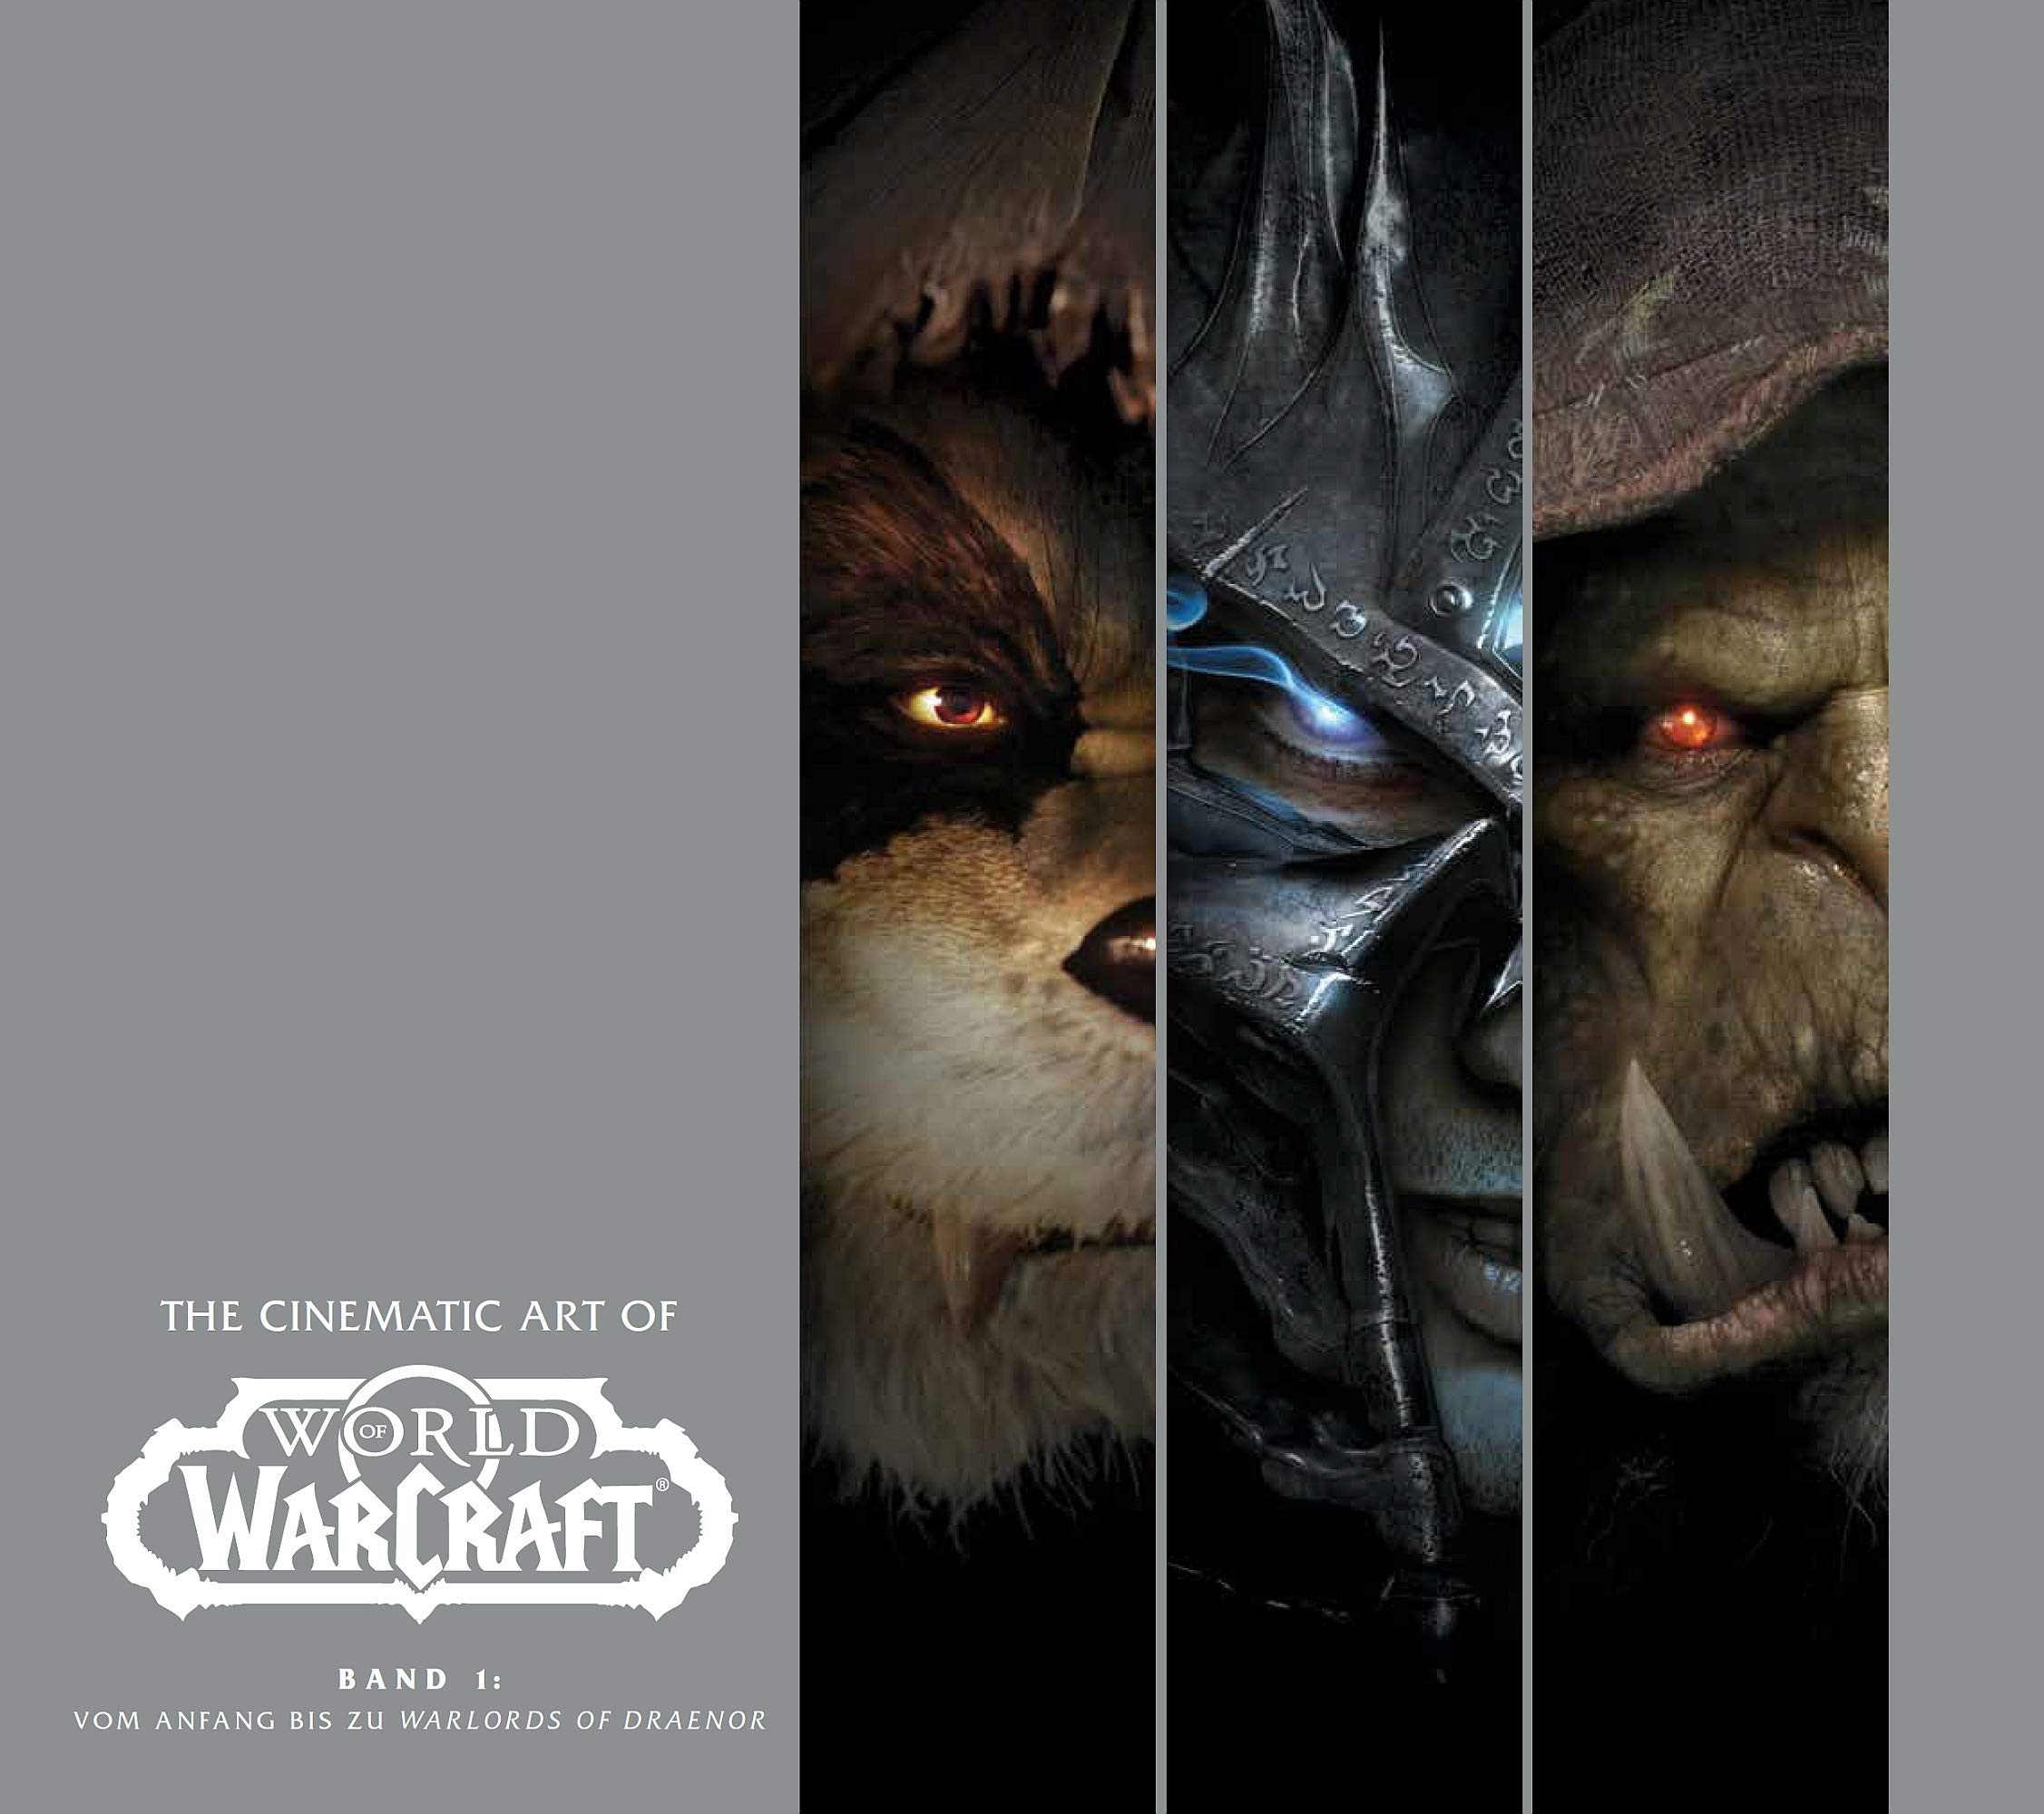 The Cinematic Art of World of Warcraft: Bd. 1: Vom Anfang bis zu Warlords of Draenor